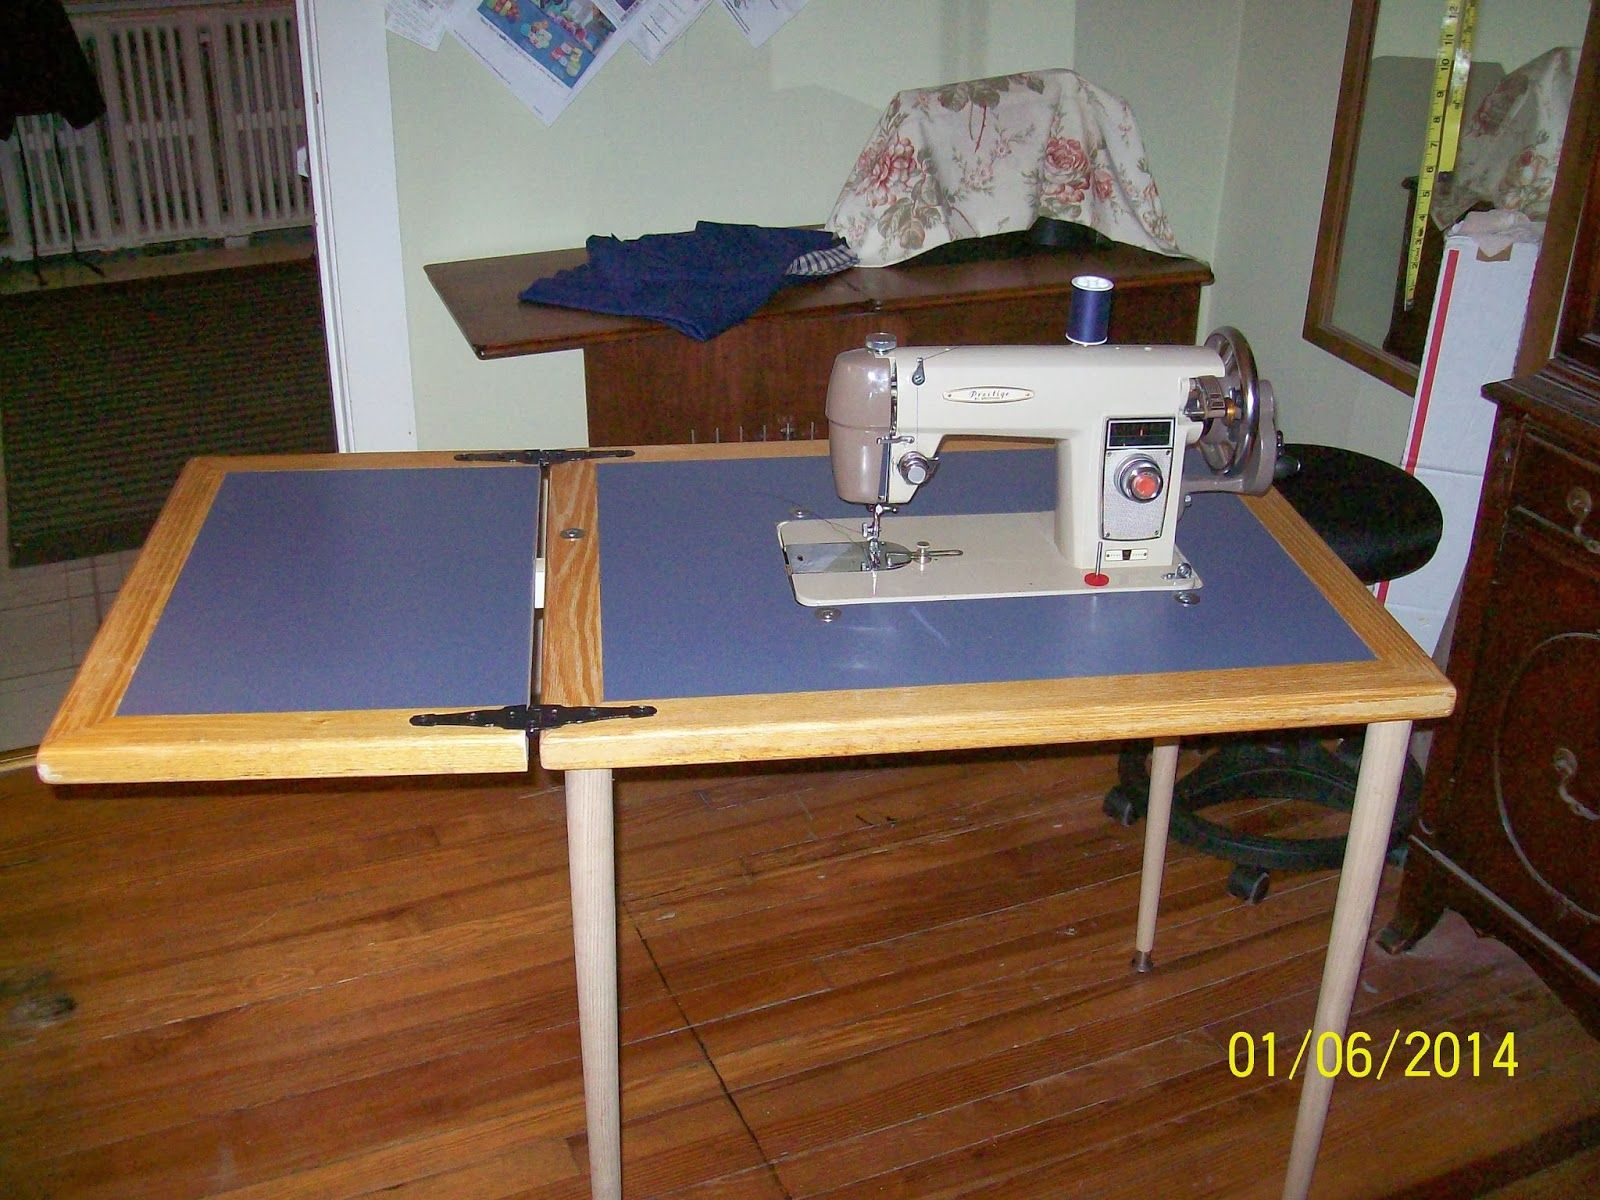 Exceptional Seam Ripper Joe...and His Sewing Machine: D.I.Y. Flatbed Sewing Machine  Table